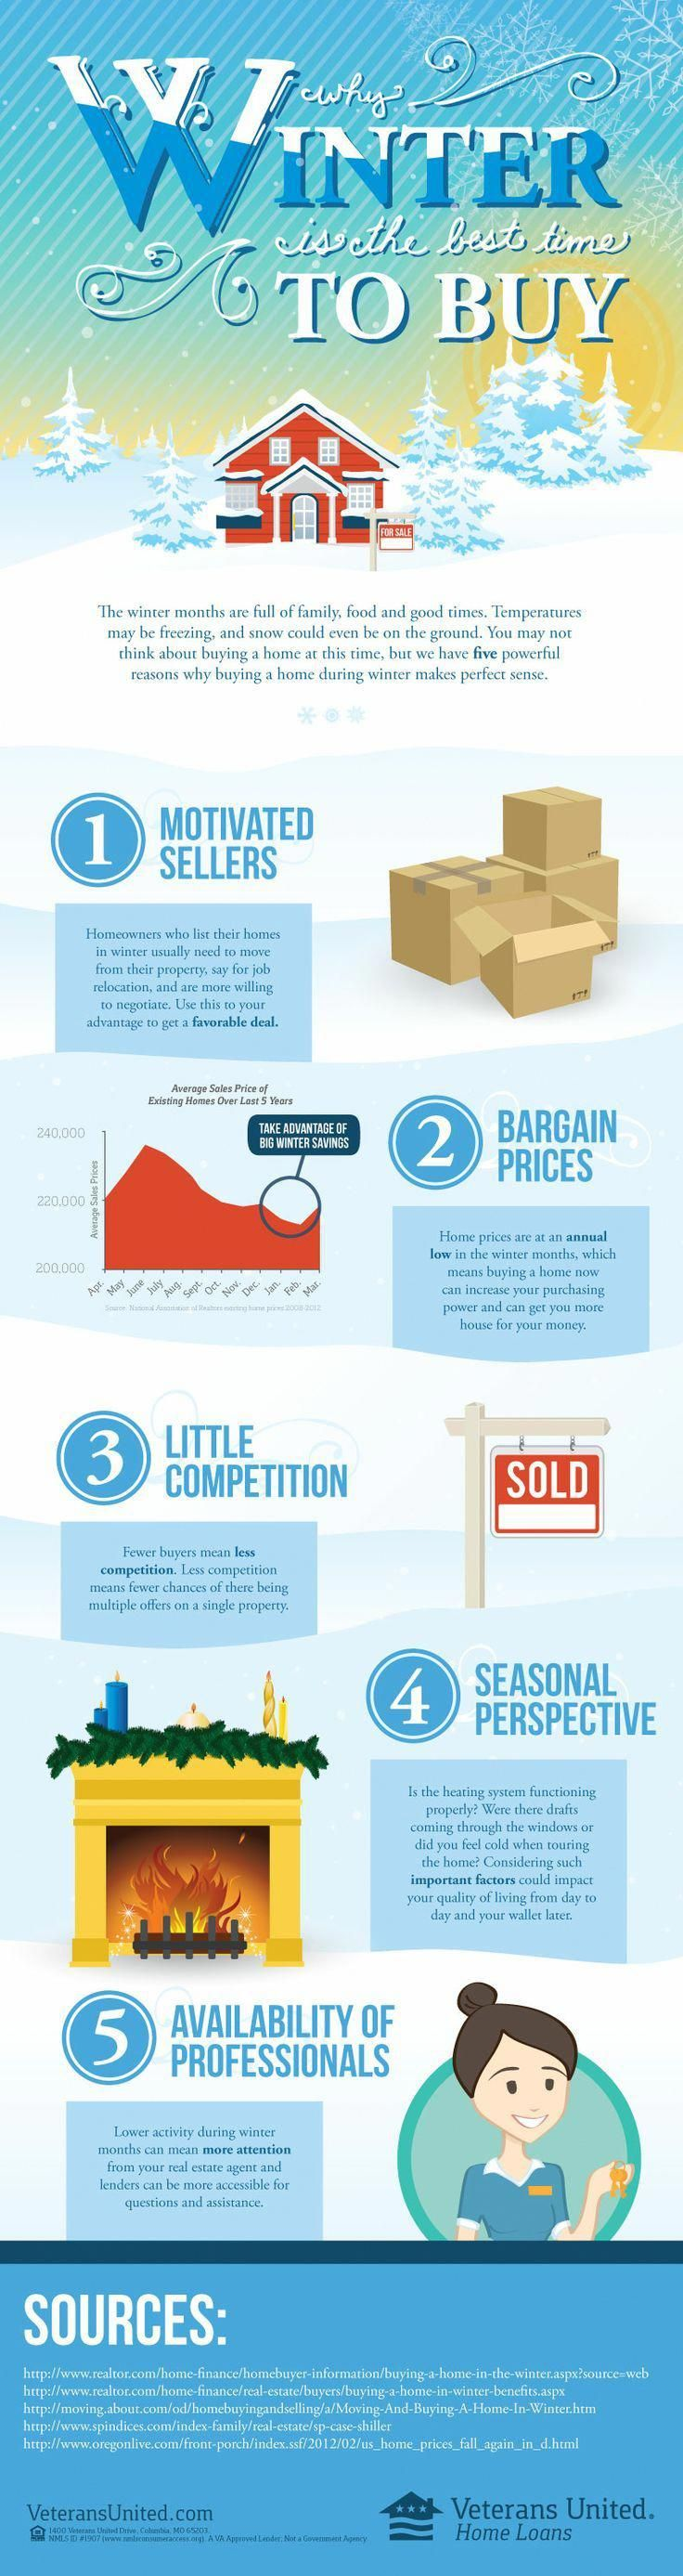 Why Winter is the Right Time to Buy [INFOGRAPHIC] (With